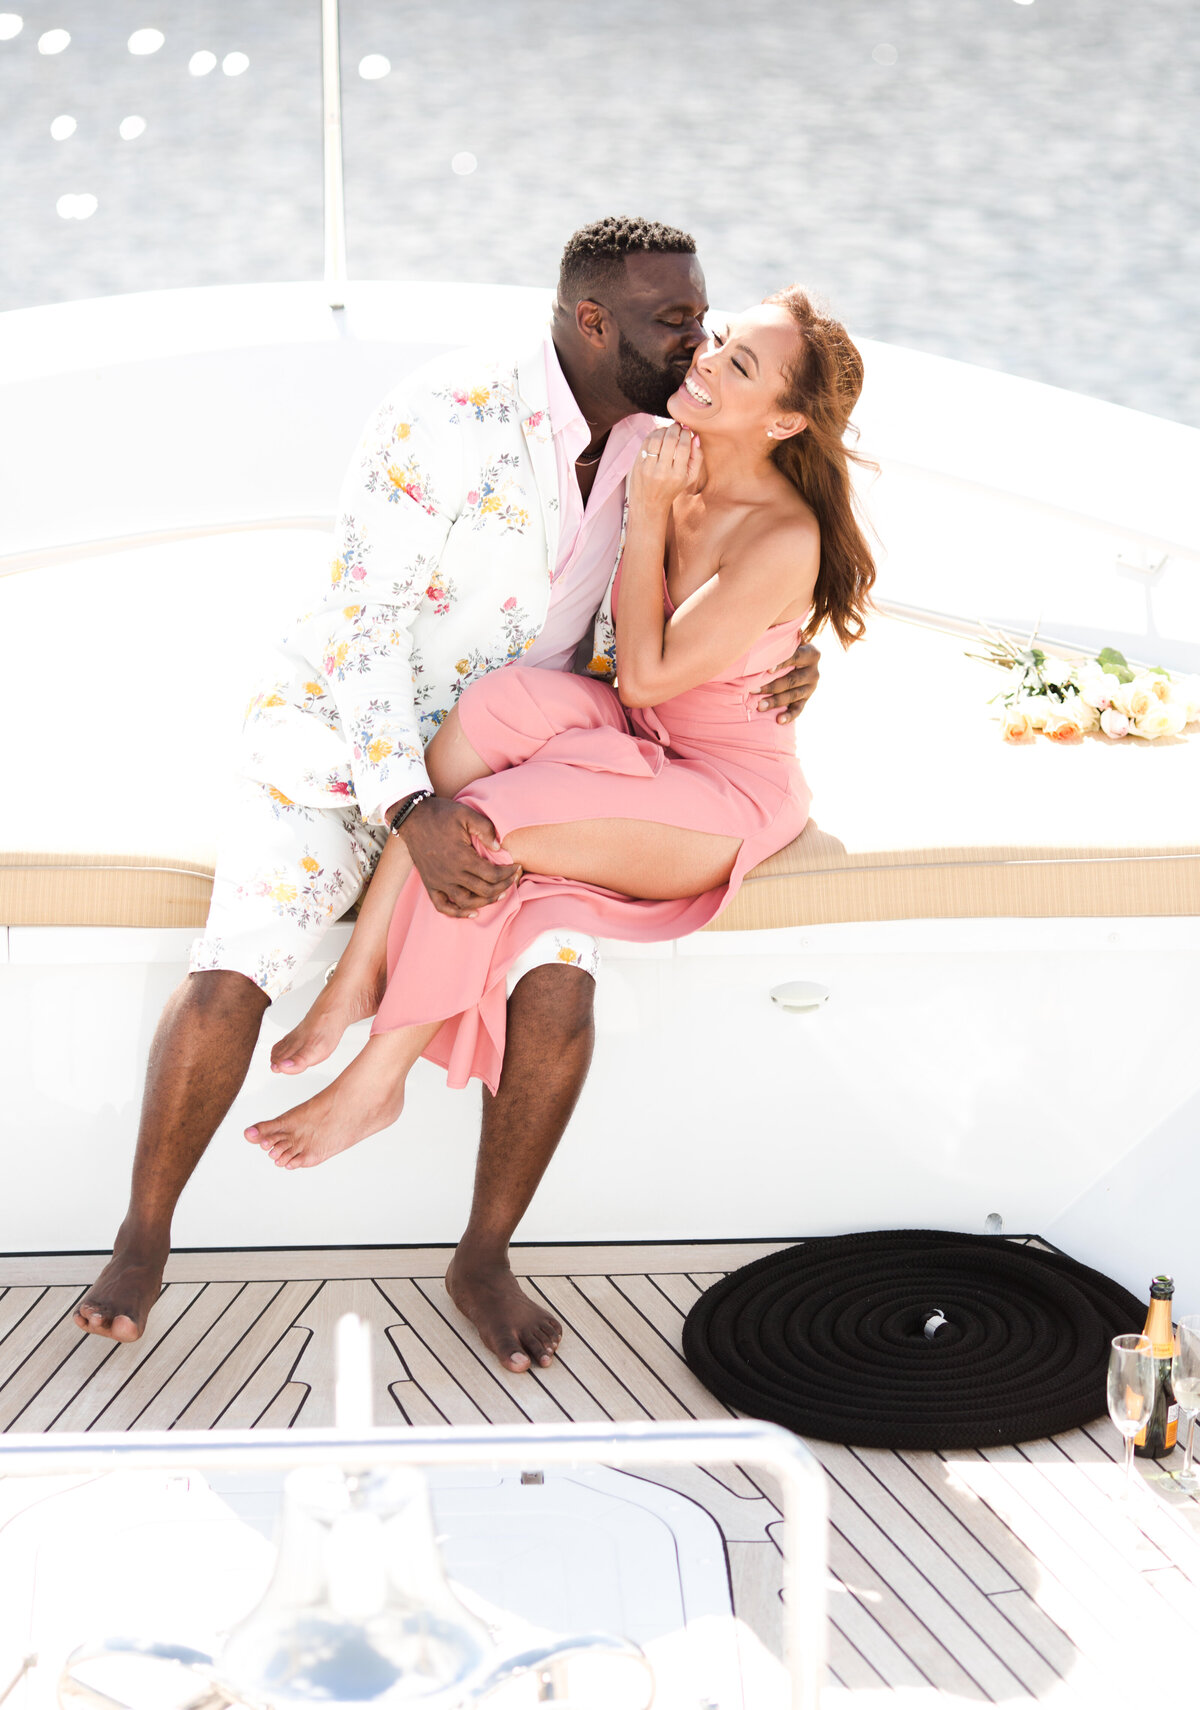 Engagement photo session in a Yacht